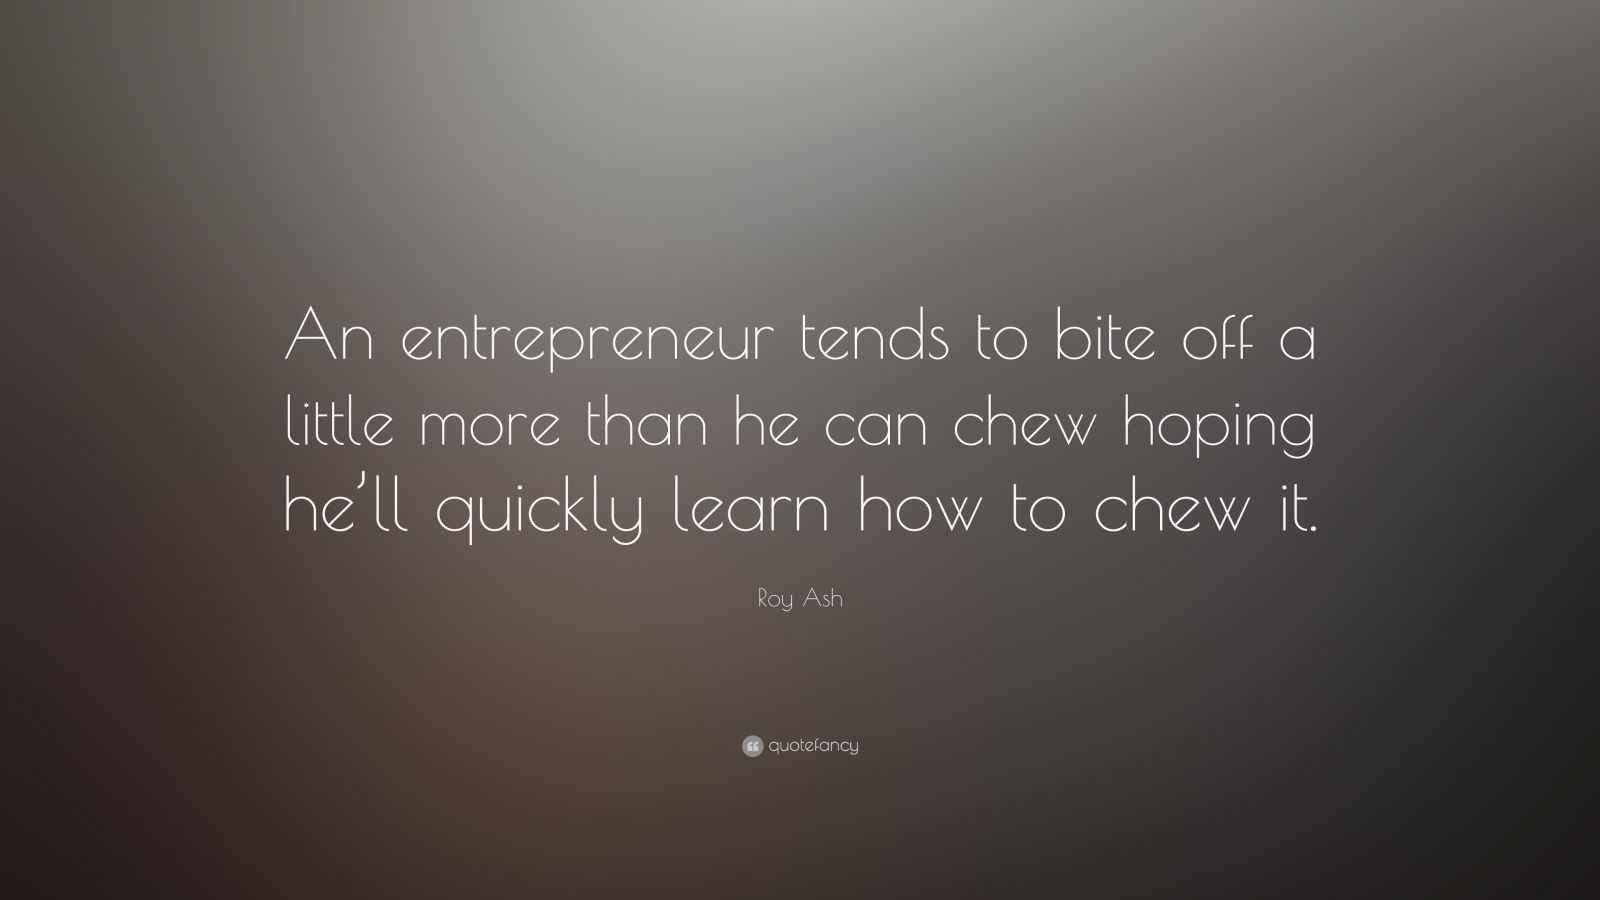 Entrepreneurship Quotes Awesome Inspirational Entrepreneurship Quotes 100 Wallpapers  Quotefancy